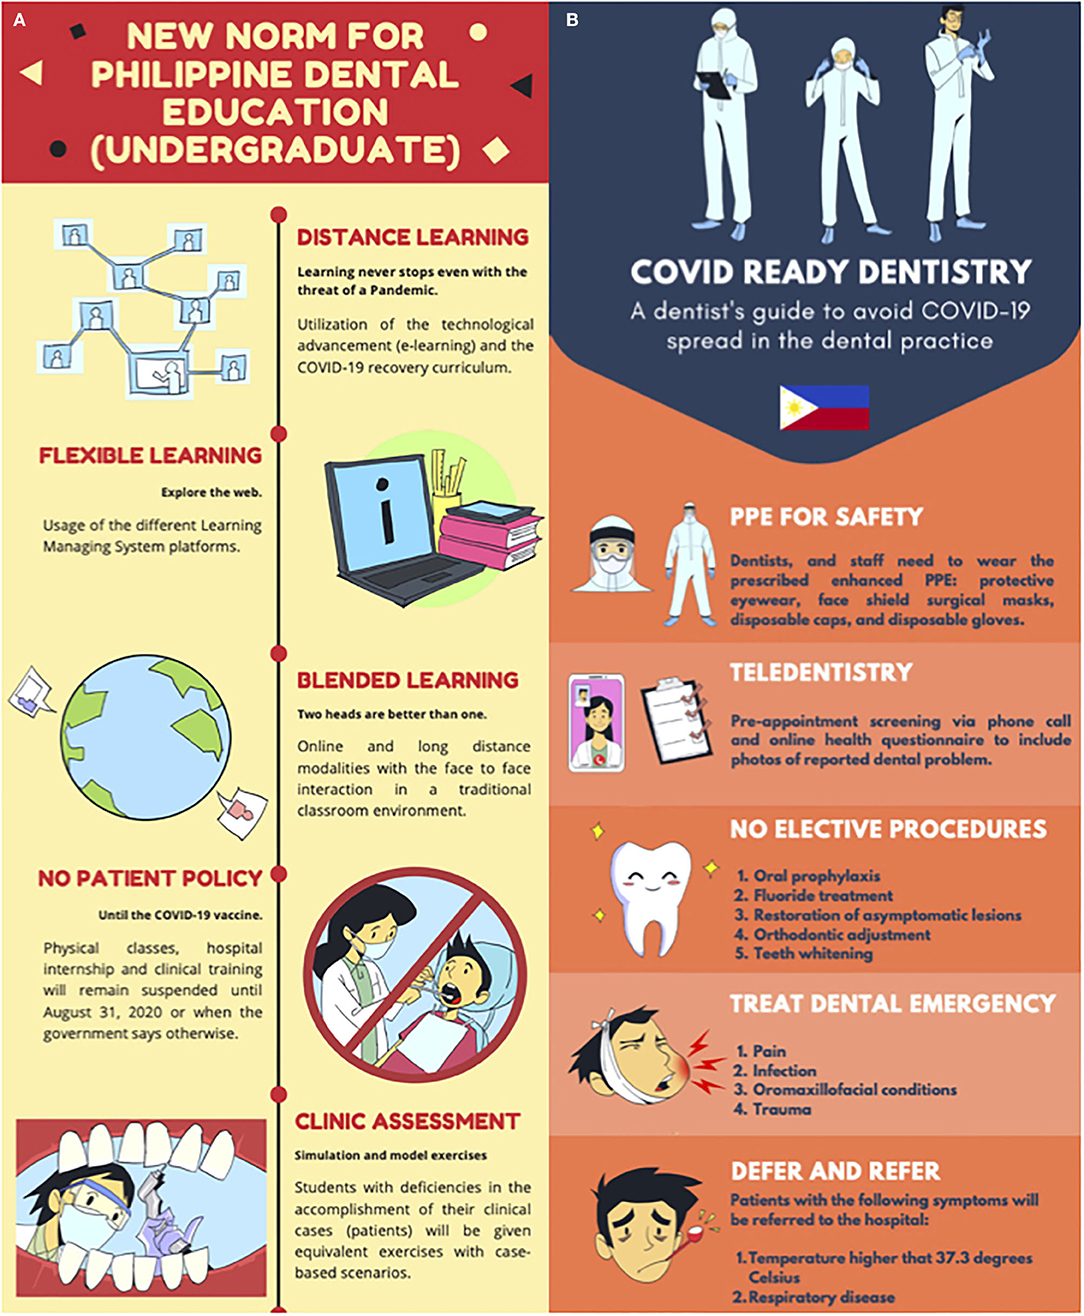 Frontiers Effects Of Covid 19 To Dental Education And Practice In The Philippines Dental Medicine